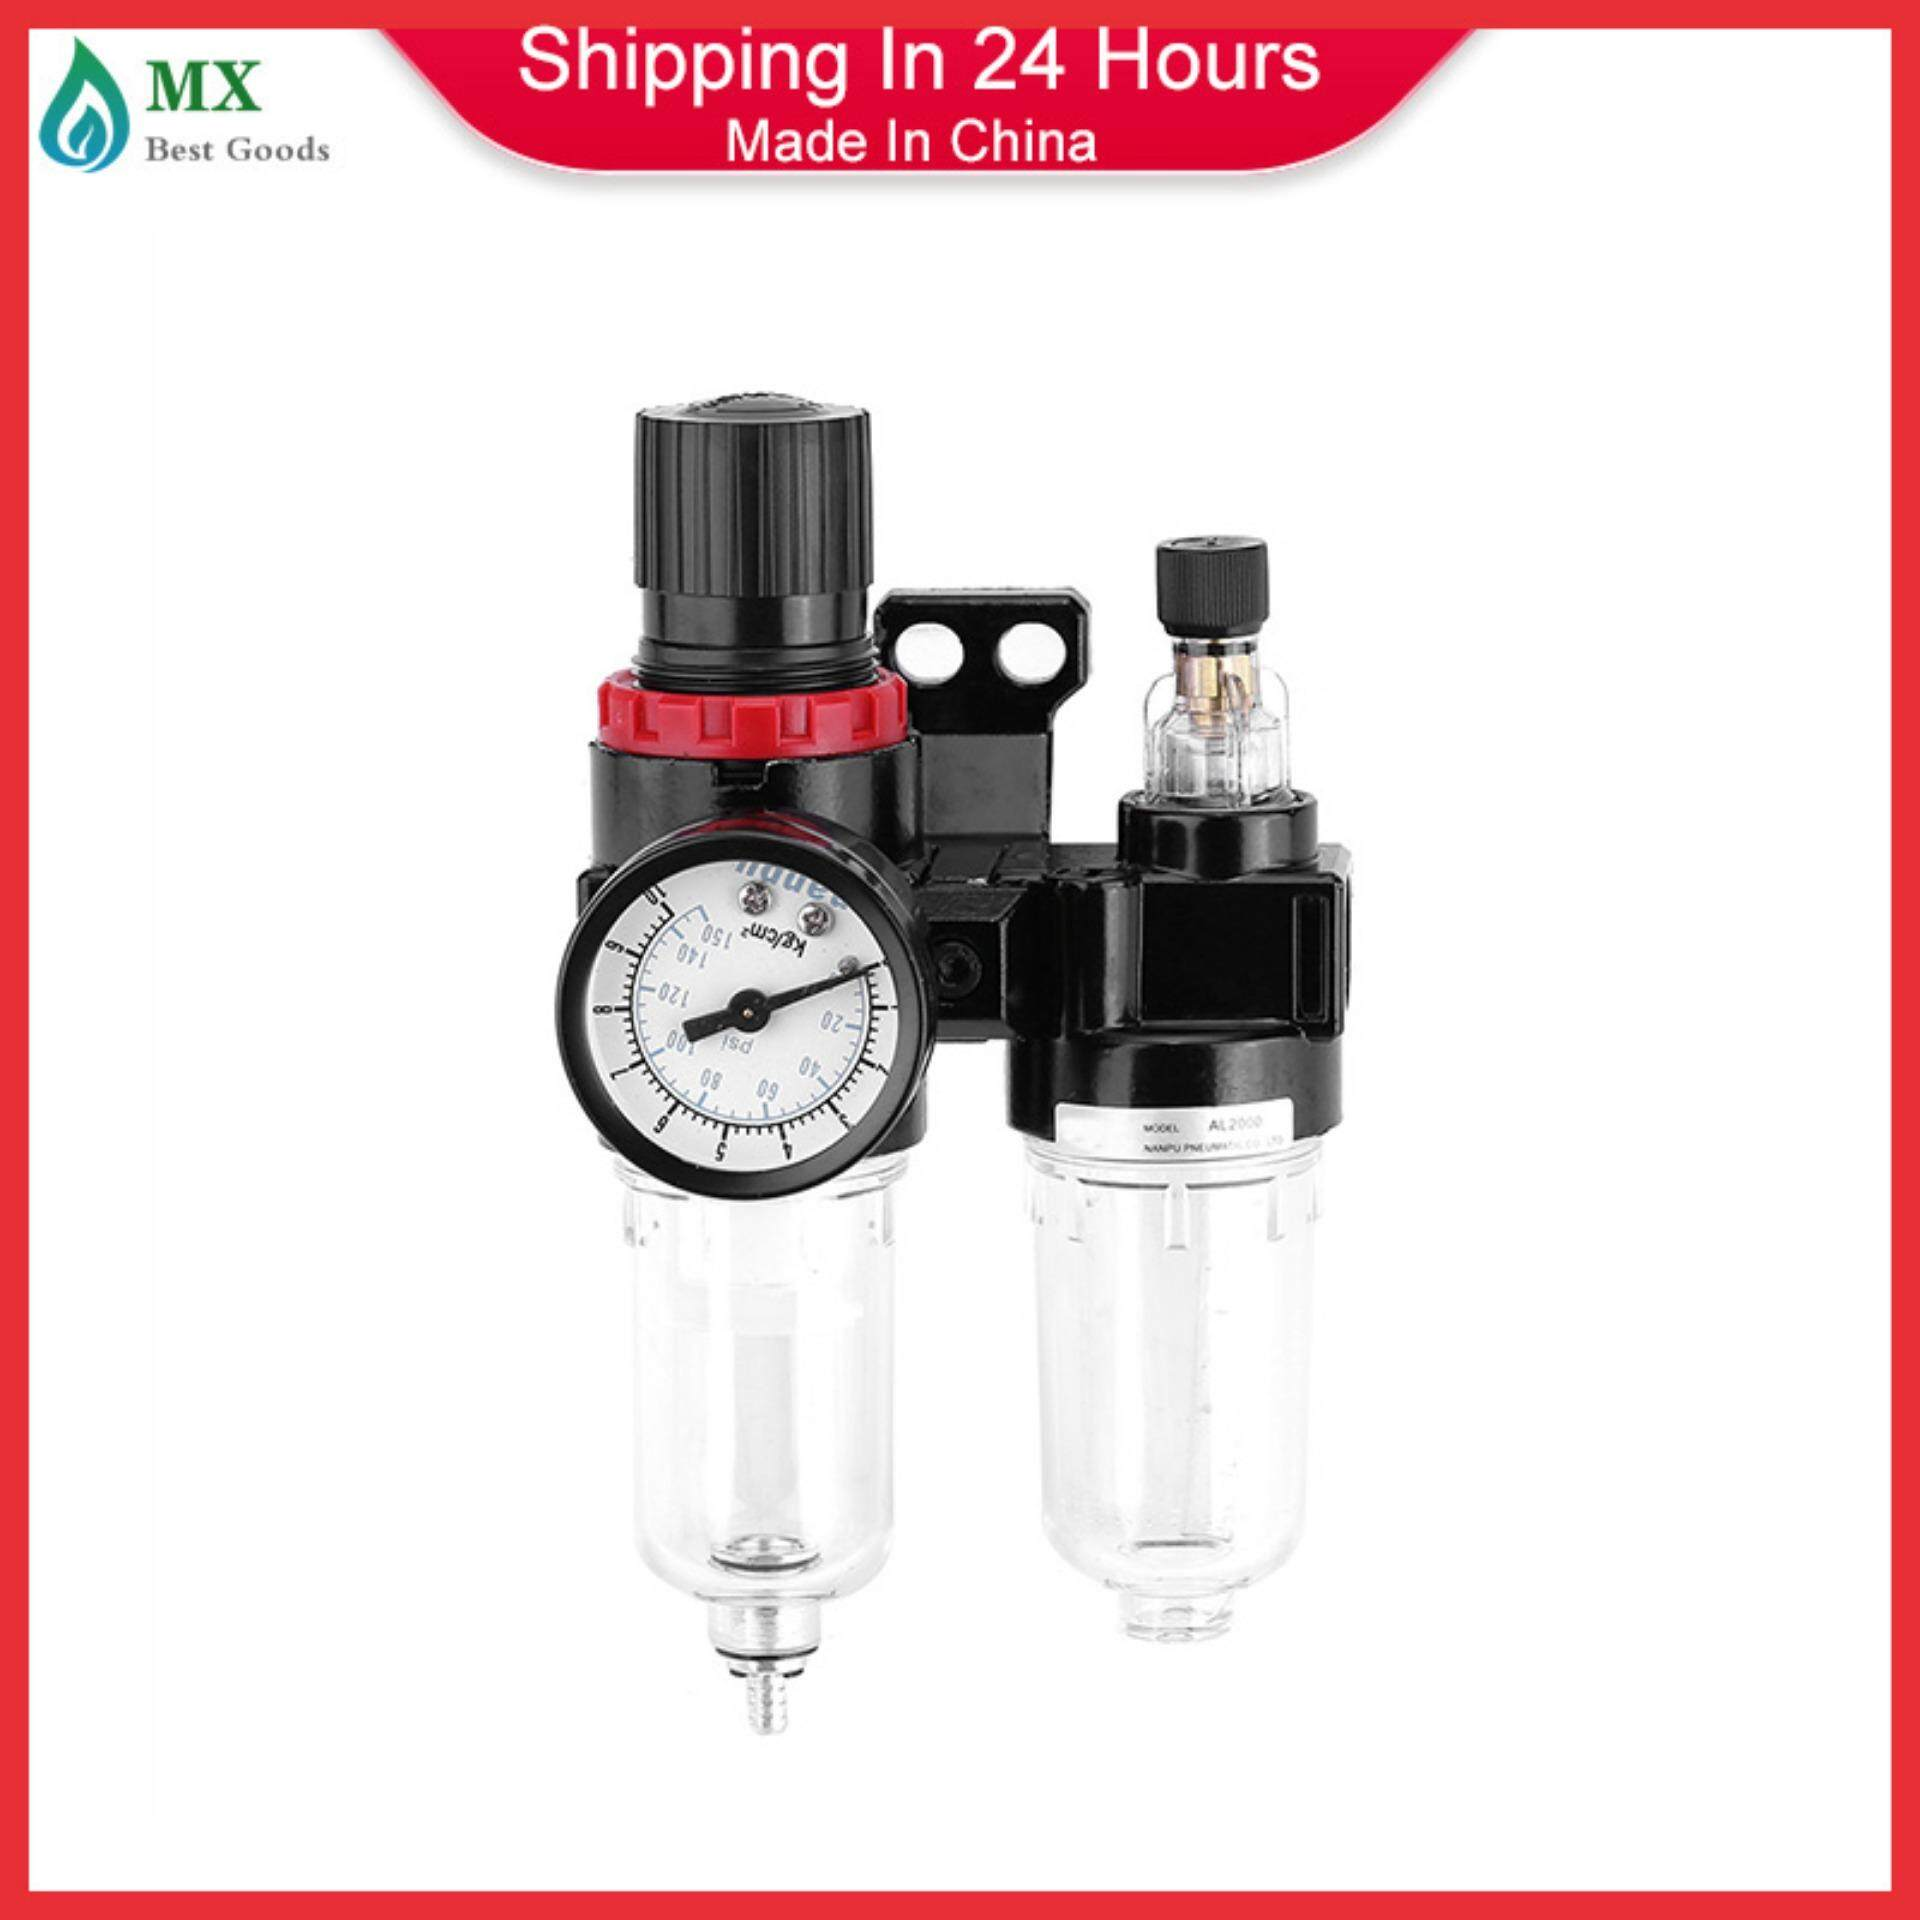 Pneumatic Air Pressure Filter Regulator Lubricator Moisture Water Trap Oil-Water Separator G1/4 By Minxin.